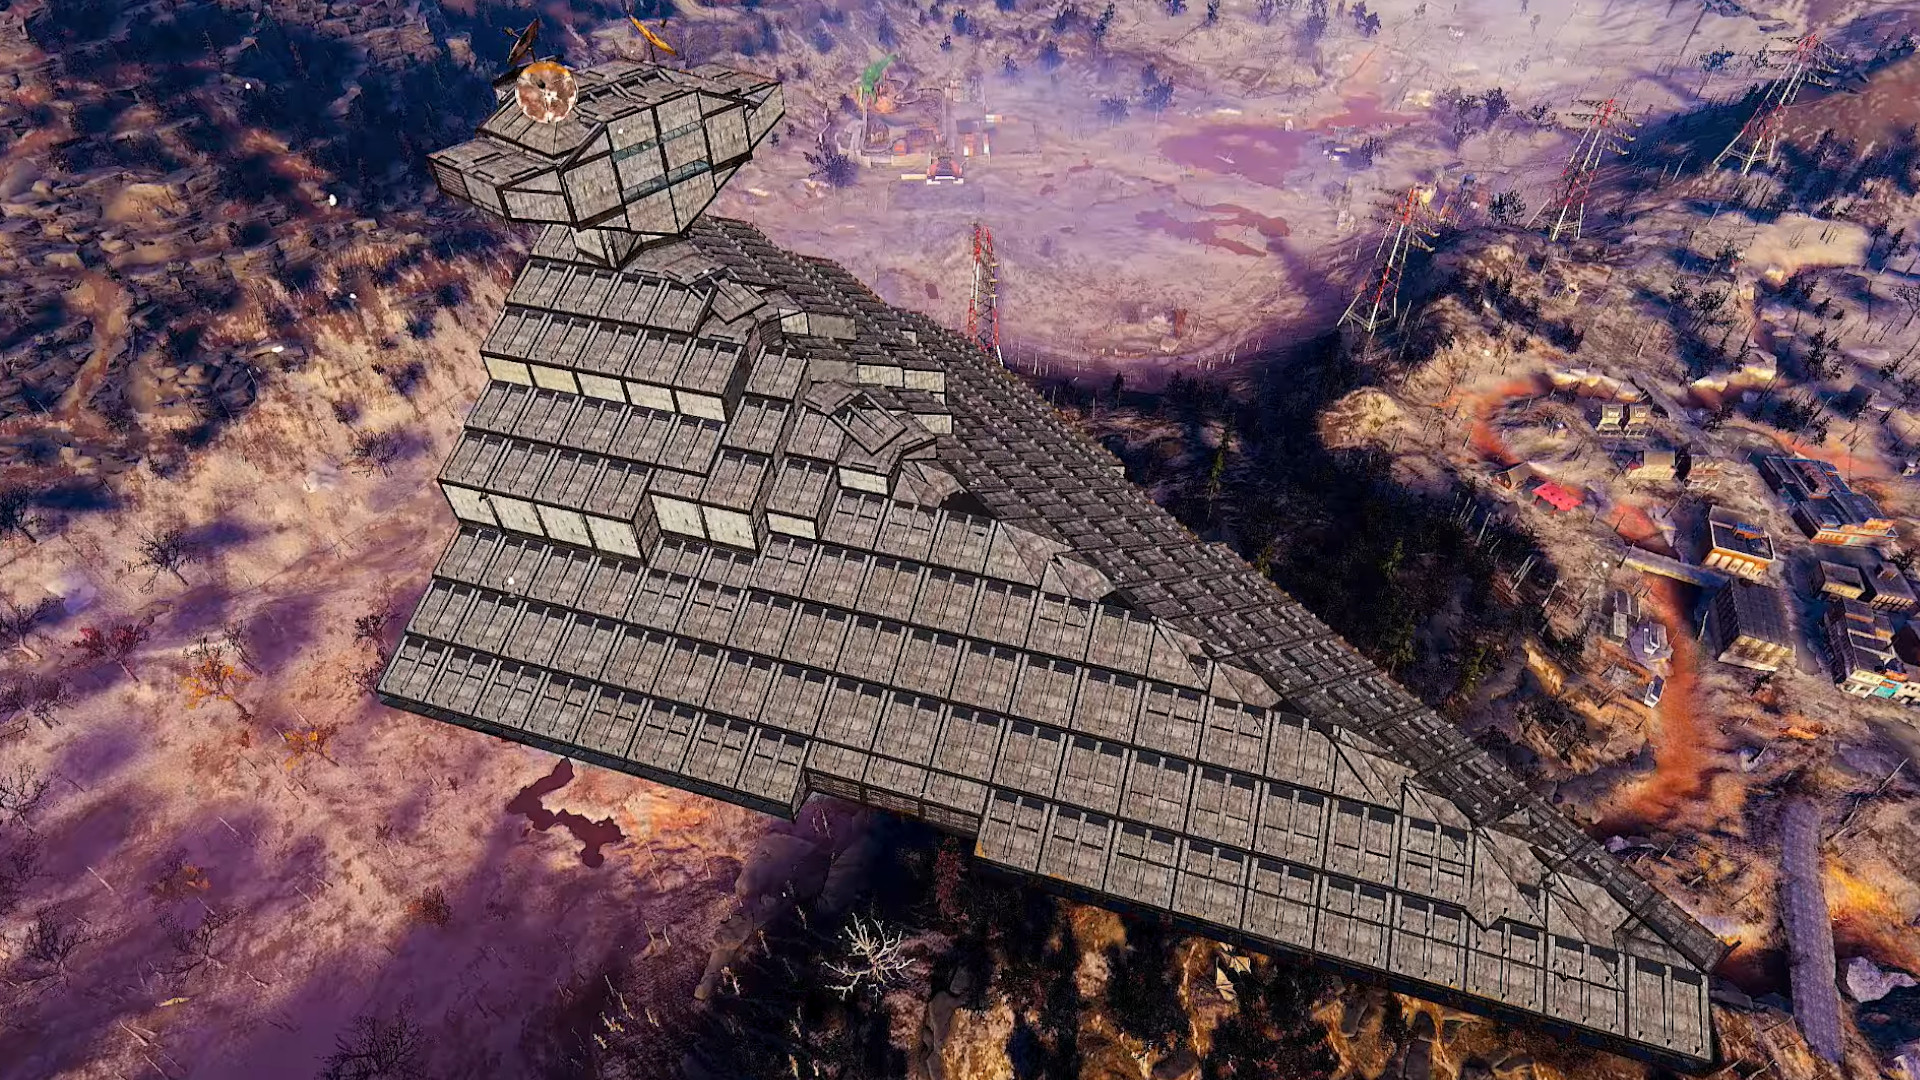 With this massive Star Destroyer build, Fallout 76 might be the best Star Wars game